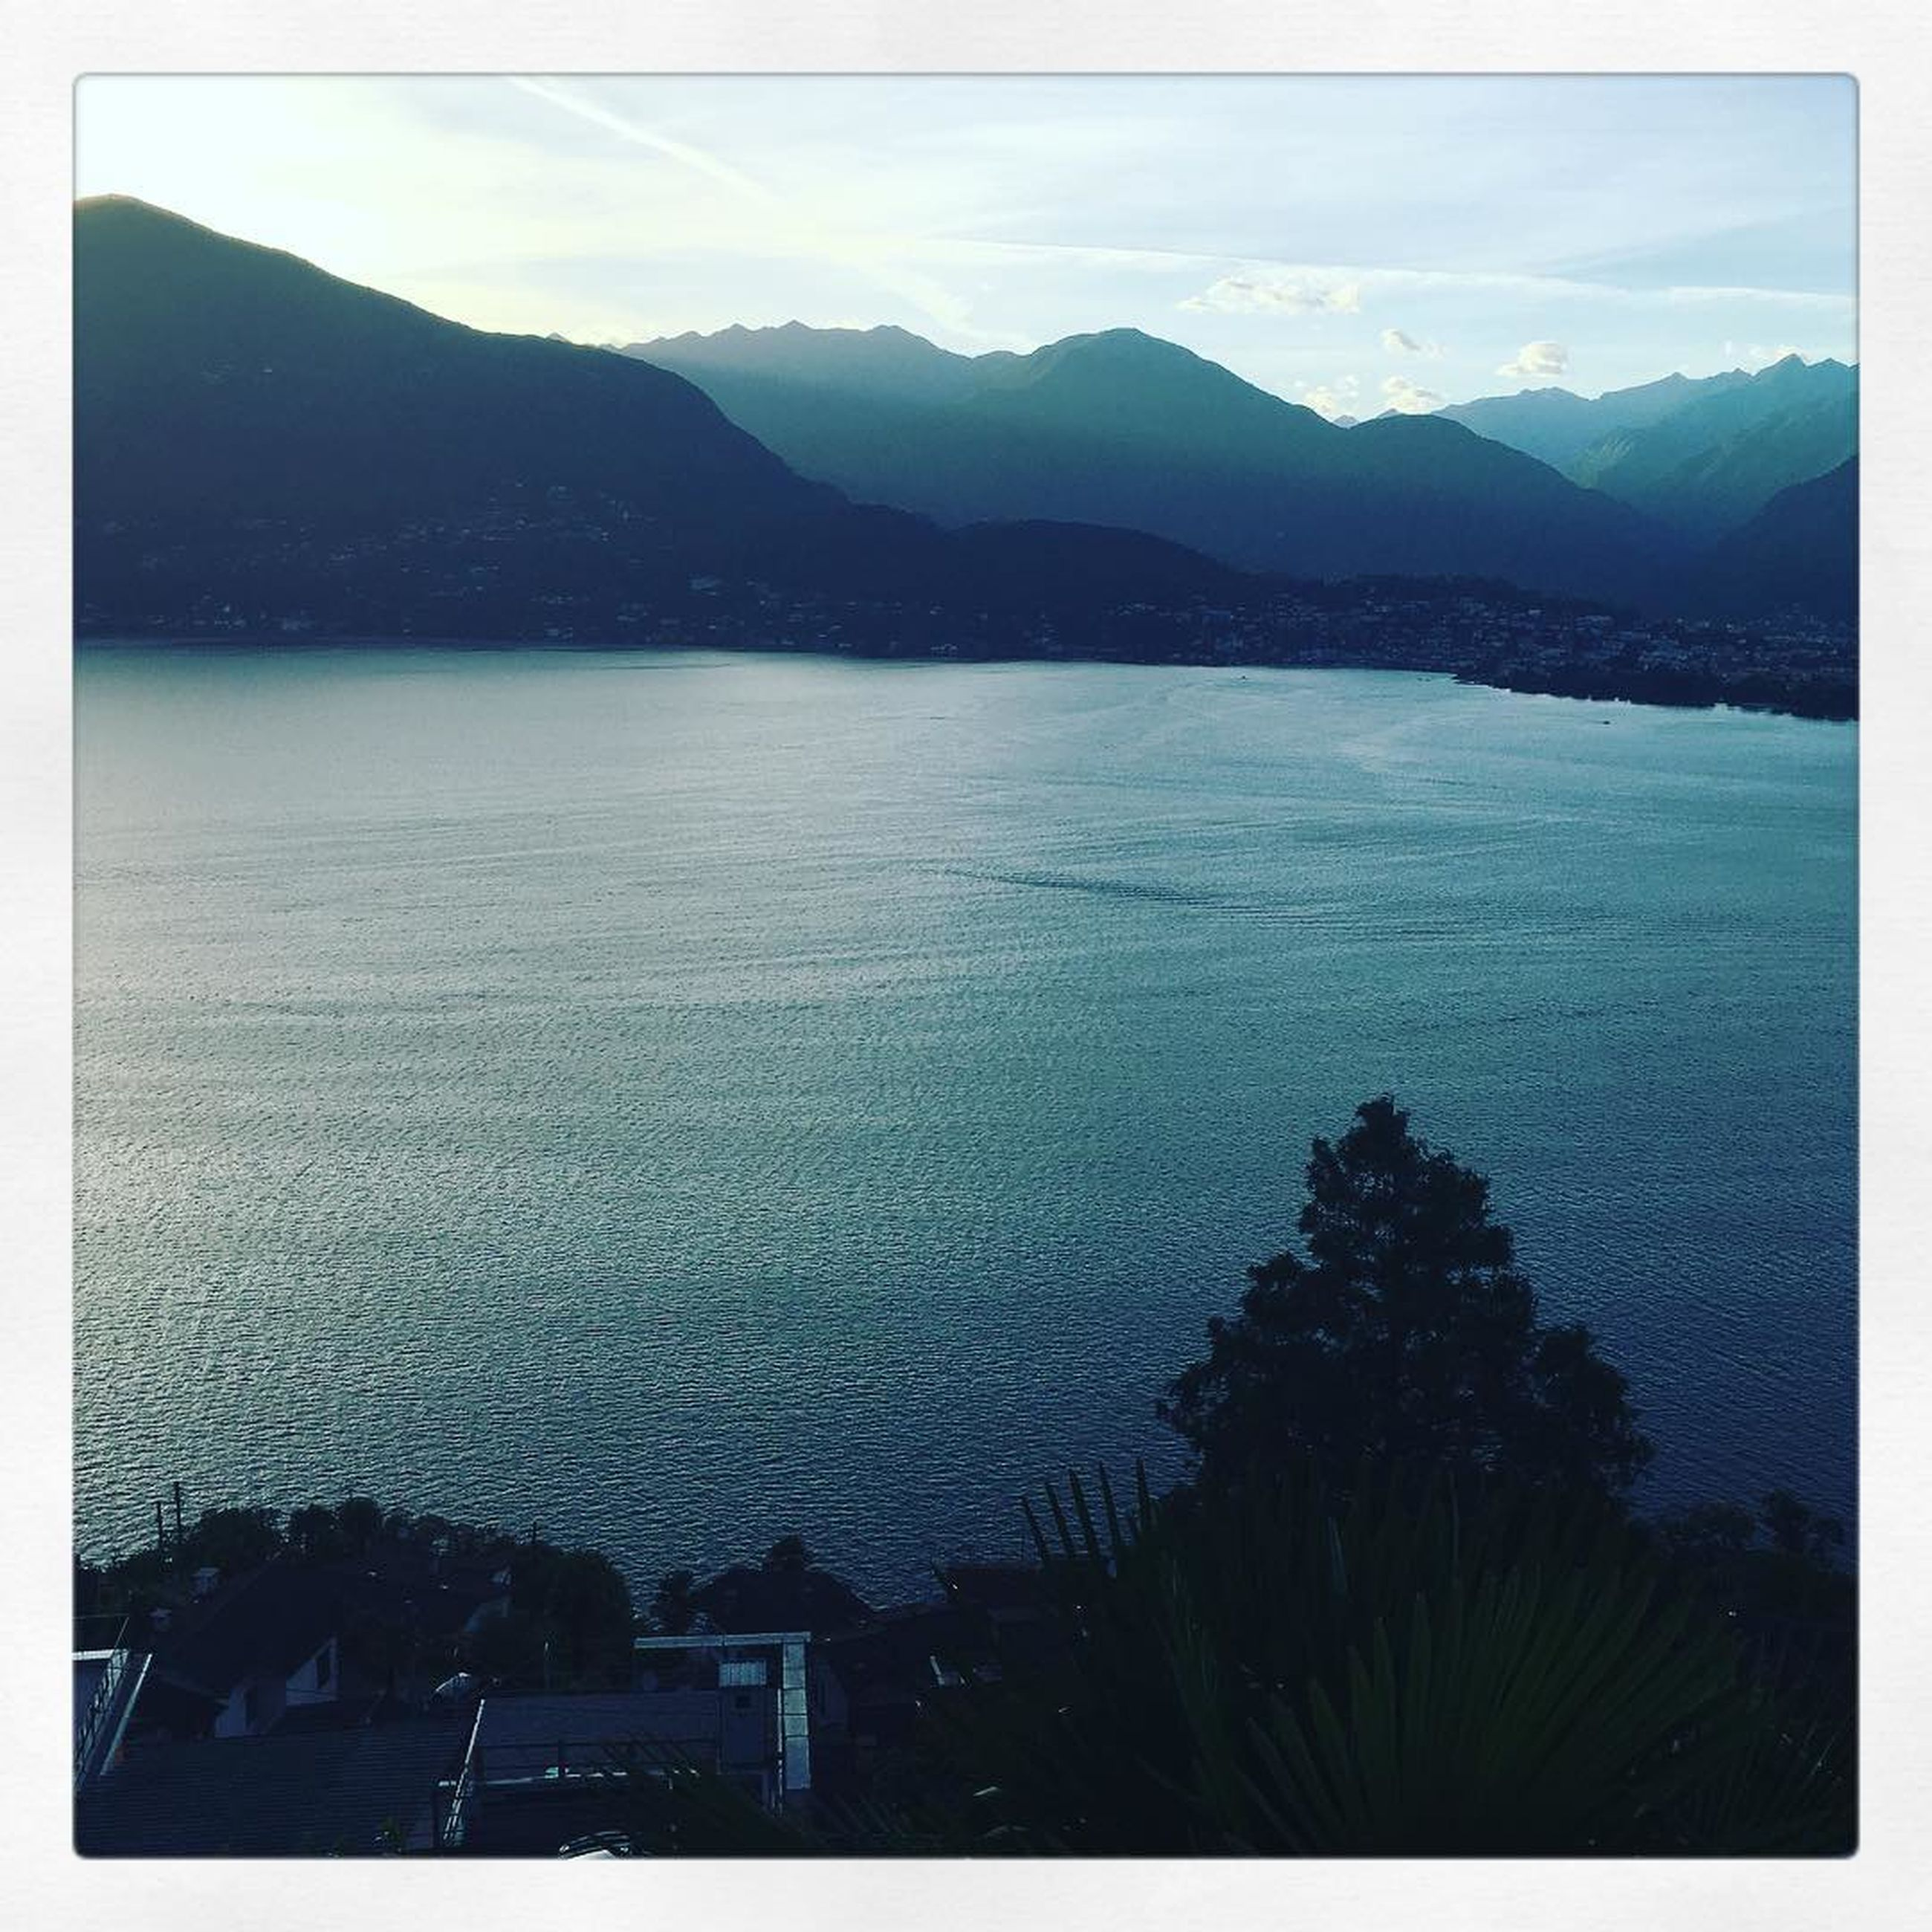 mountain, water, sea, nature, sky, beauty in nature, tree, outdoors, scenics, no people, day